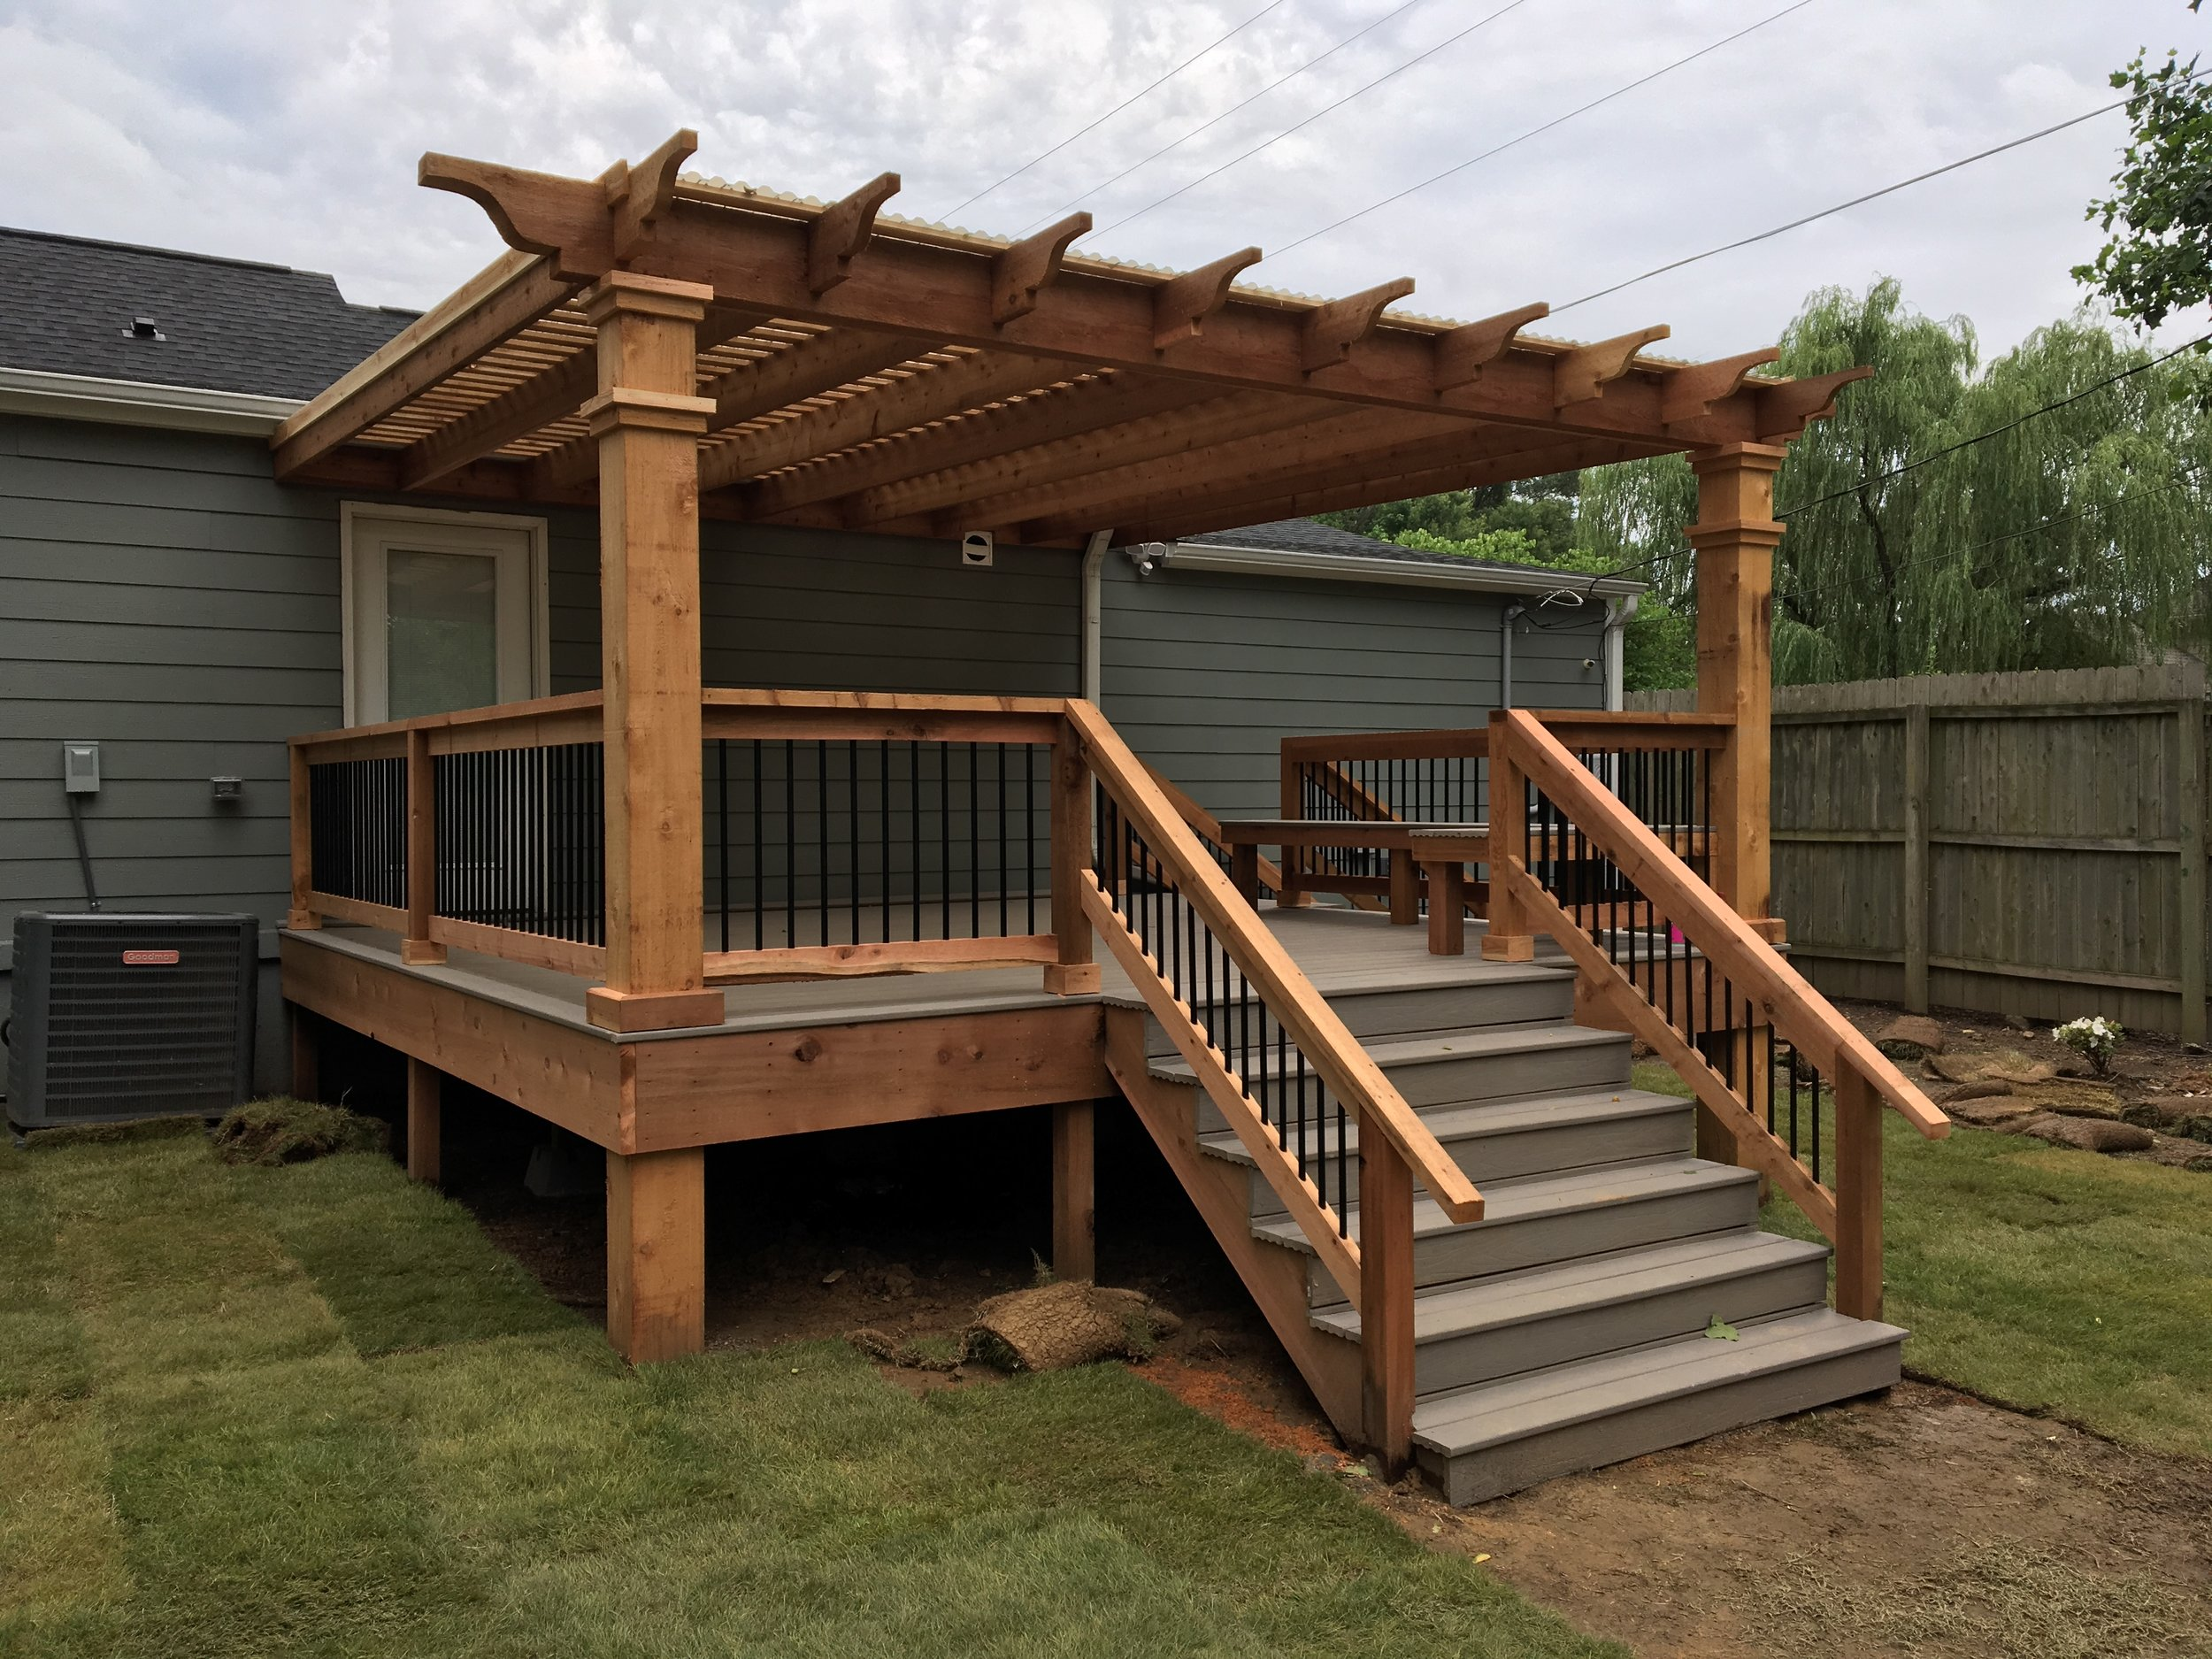 East Memphis Deck/Pergola   This deck, made from Choice-Dek, made the perfect addition to this backyard. We constructed the deck, its cedar handrails, and the attached pergola.